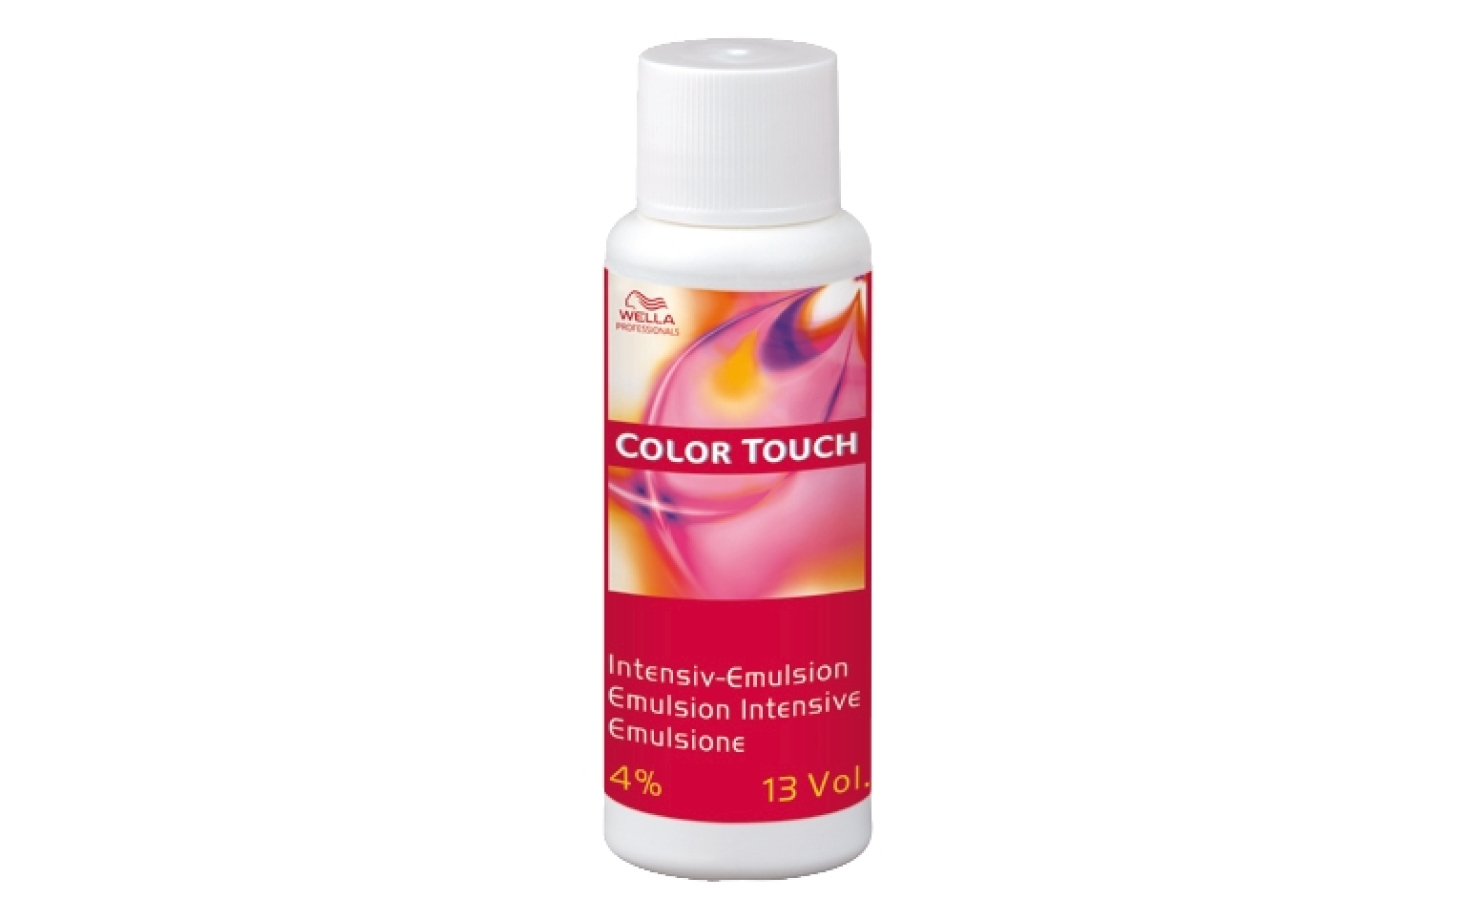 Wella Color Touch Emulsion  4 % 60 ml